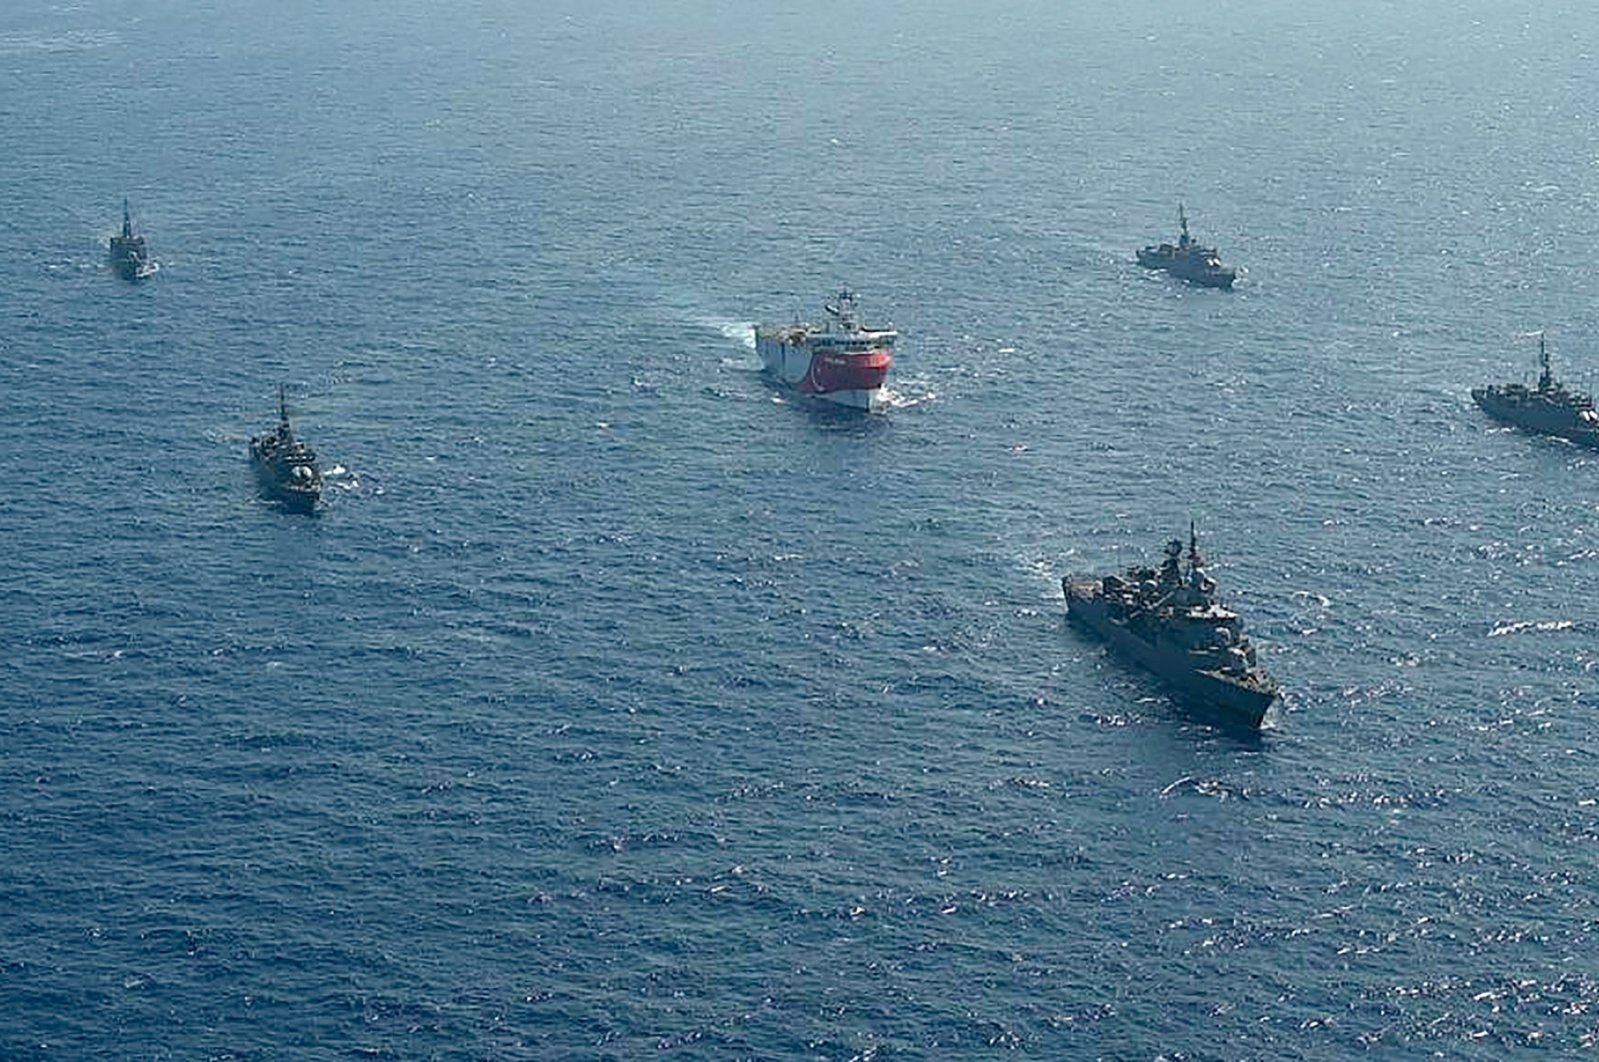 Turkish seismic research vessel Oruç Reis (C) as it is escorted by Turkish Naval ships in the Mediterranean Sea, off Antalya, Aug. 10, 2020. (AFP)